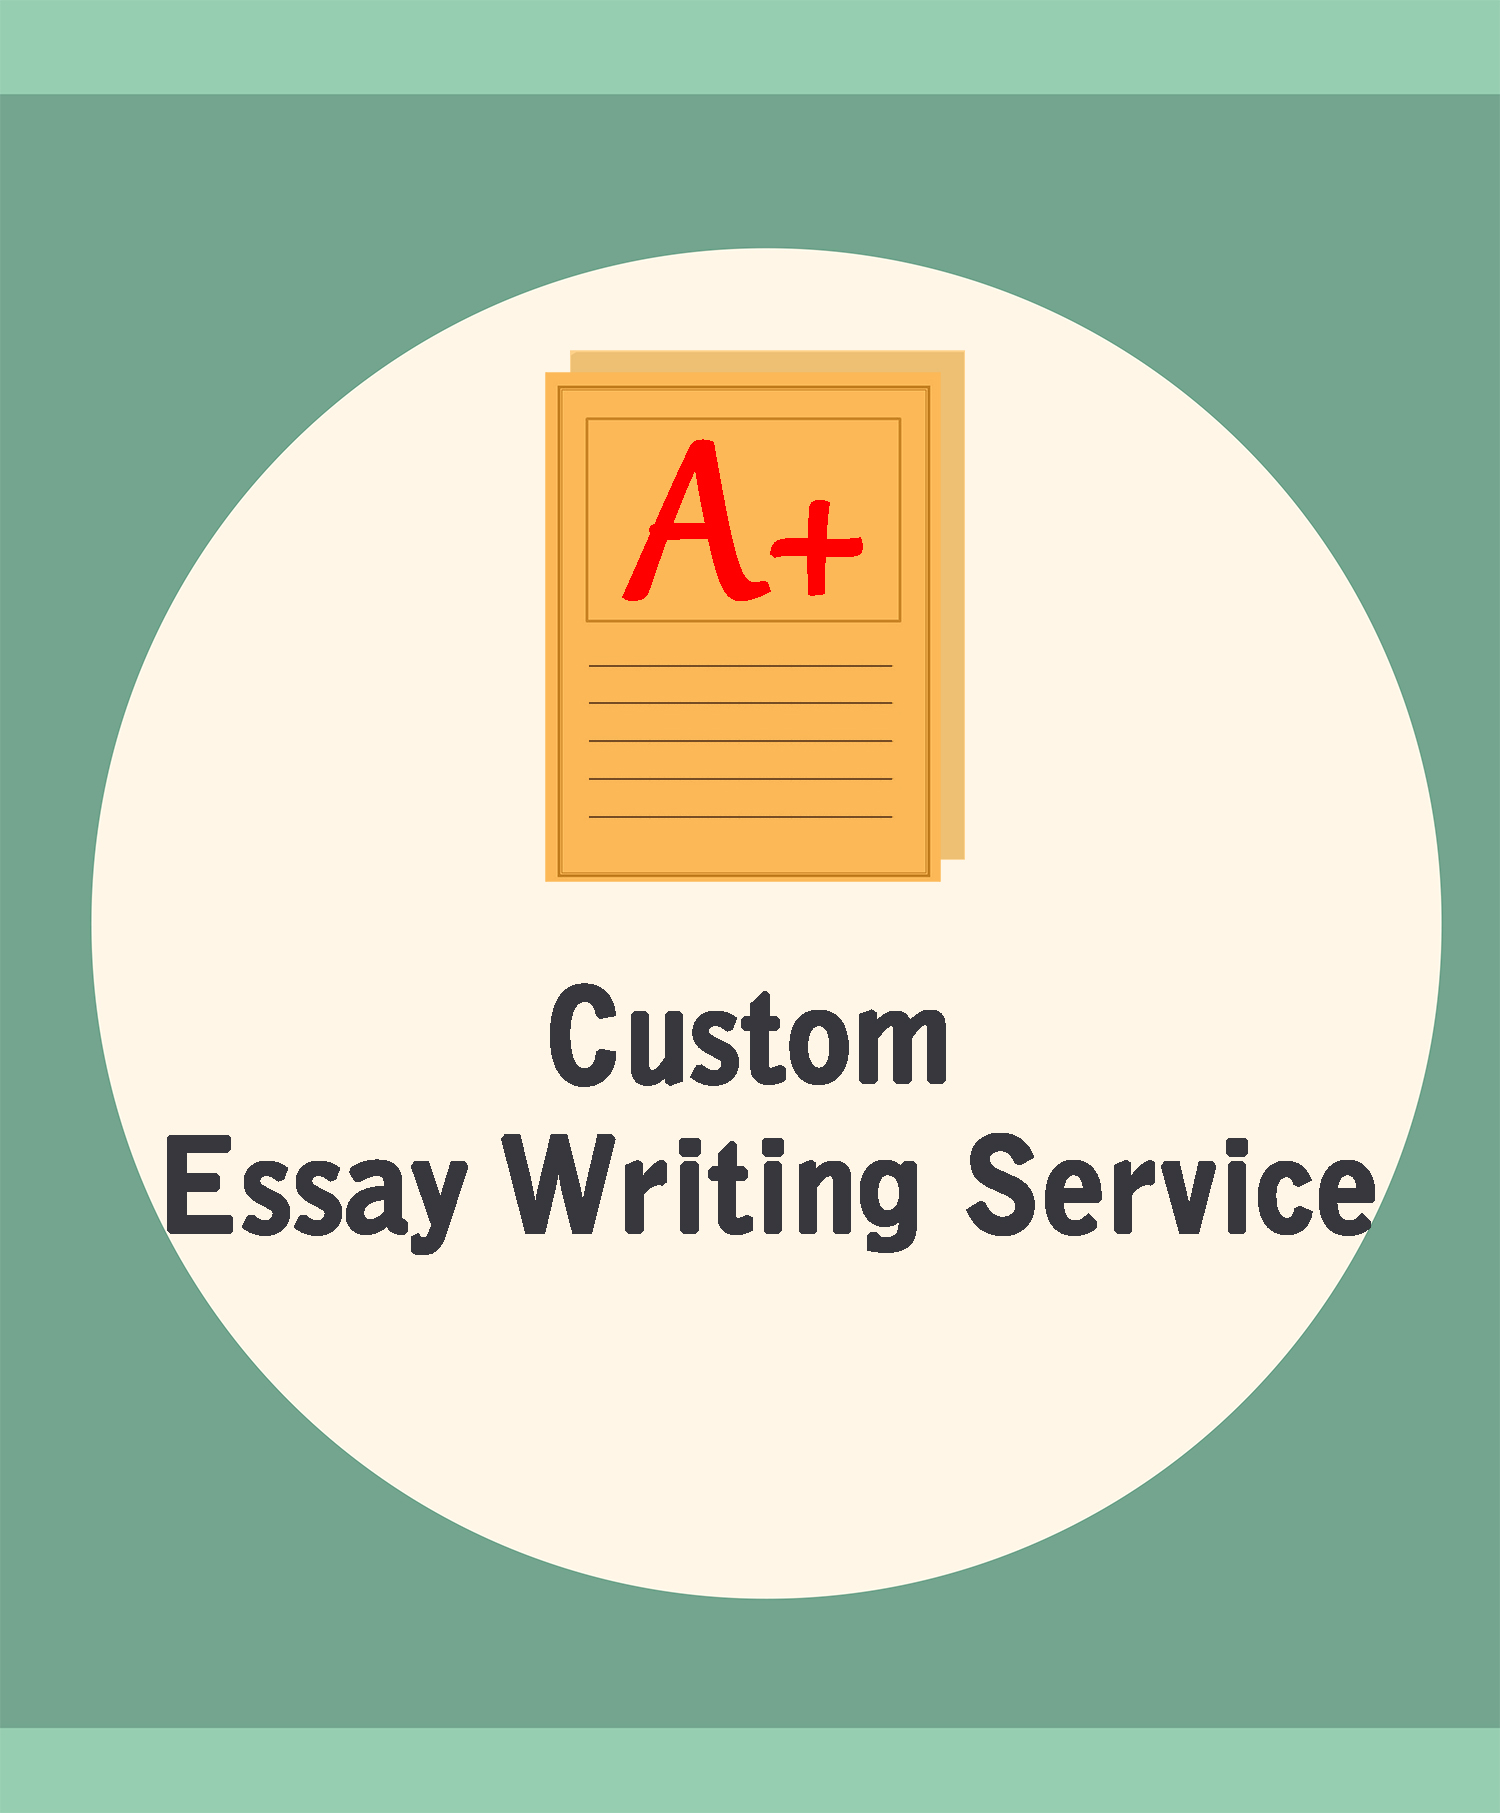 customized essay custom essay writing service benefits ljkh cover  custom paper writing custom paper writing tk custom essay plus